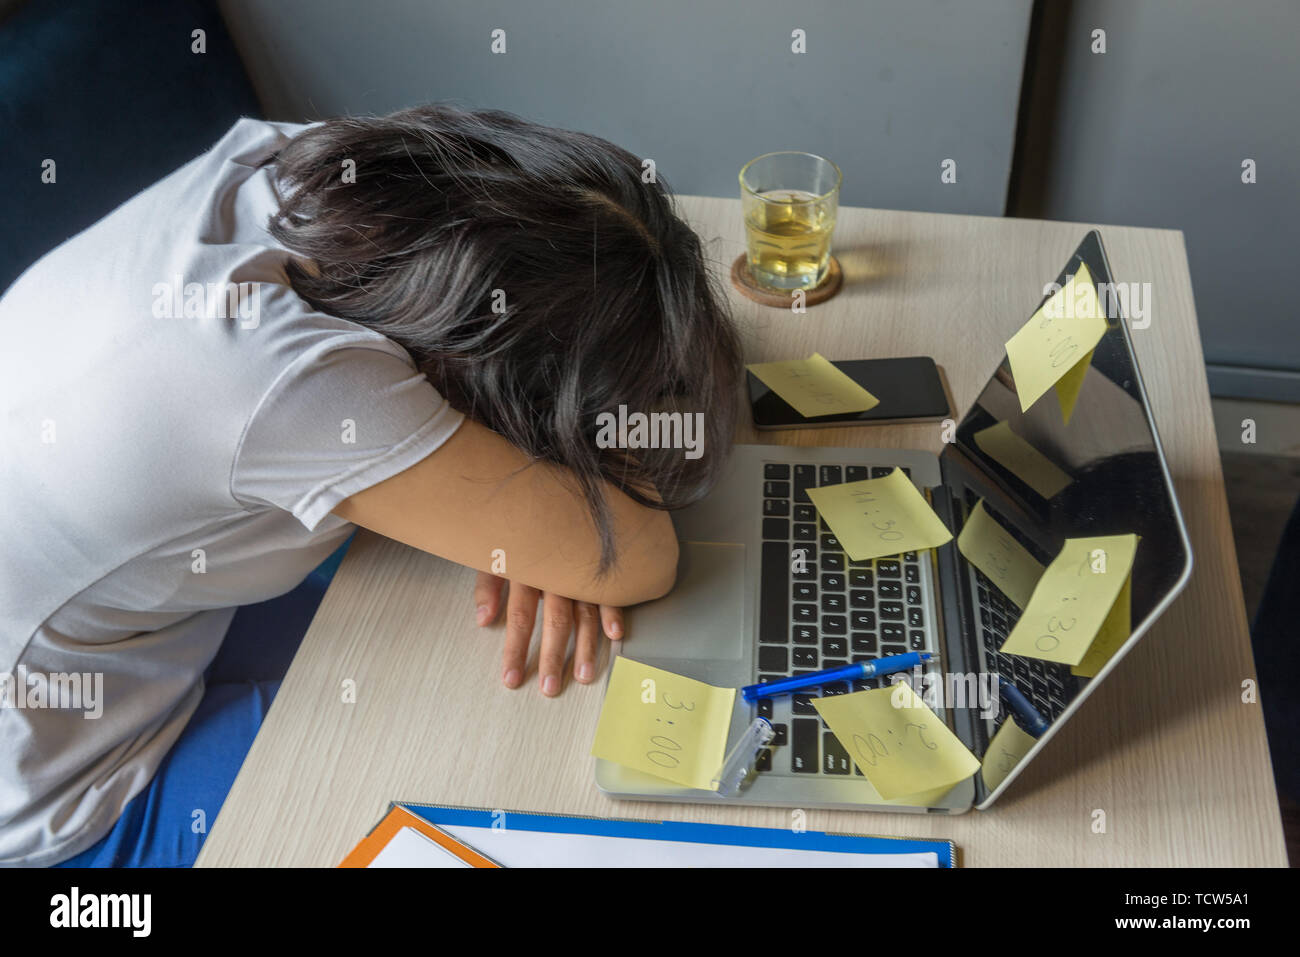 Stressful freelancer female fall asleep on laptop with sticky notes - Stock Image